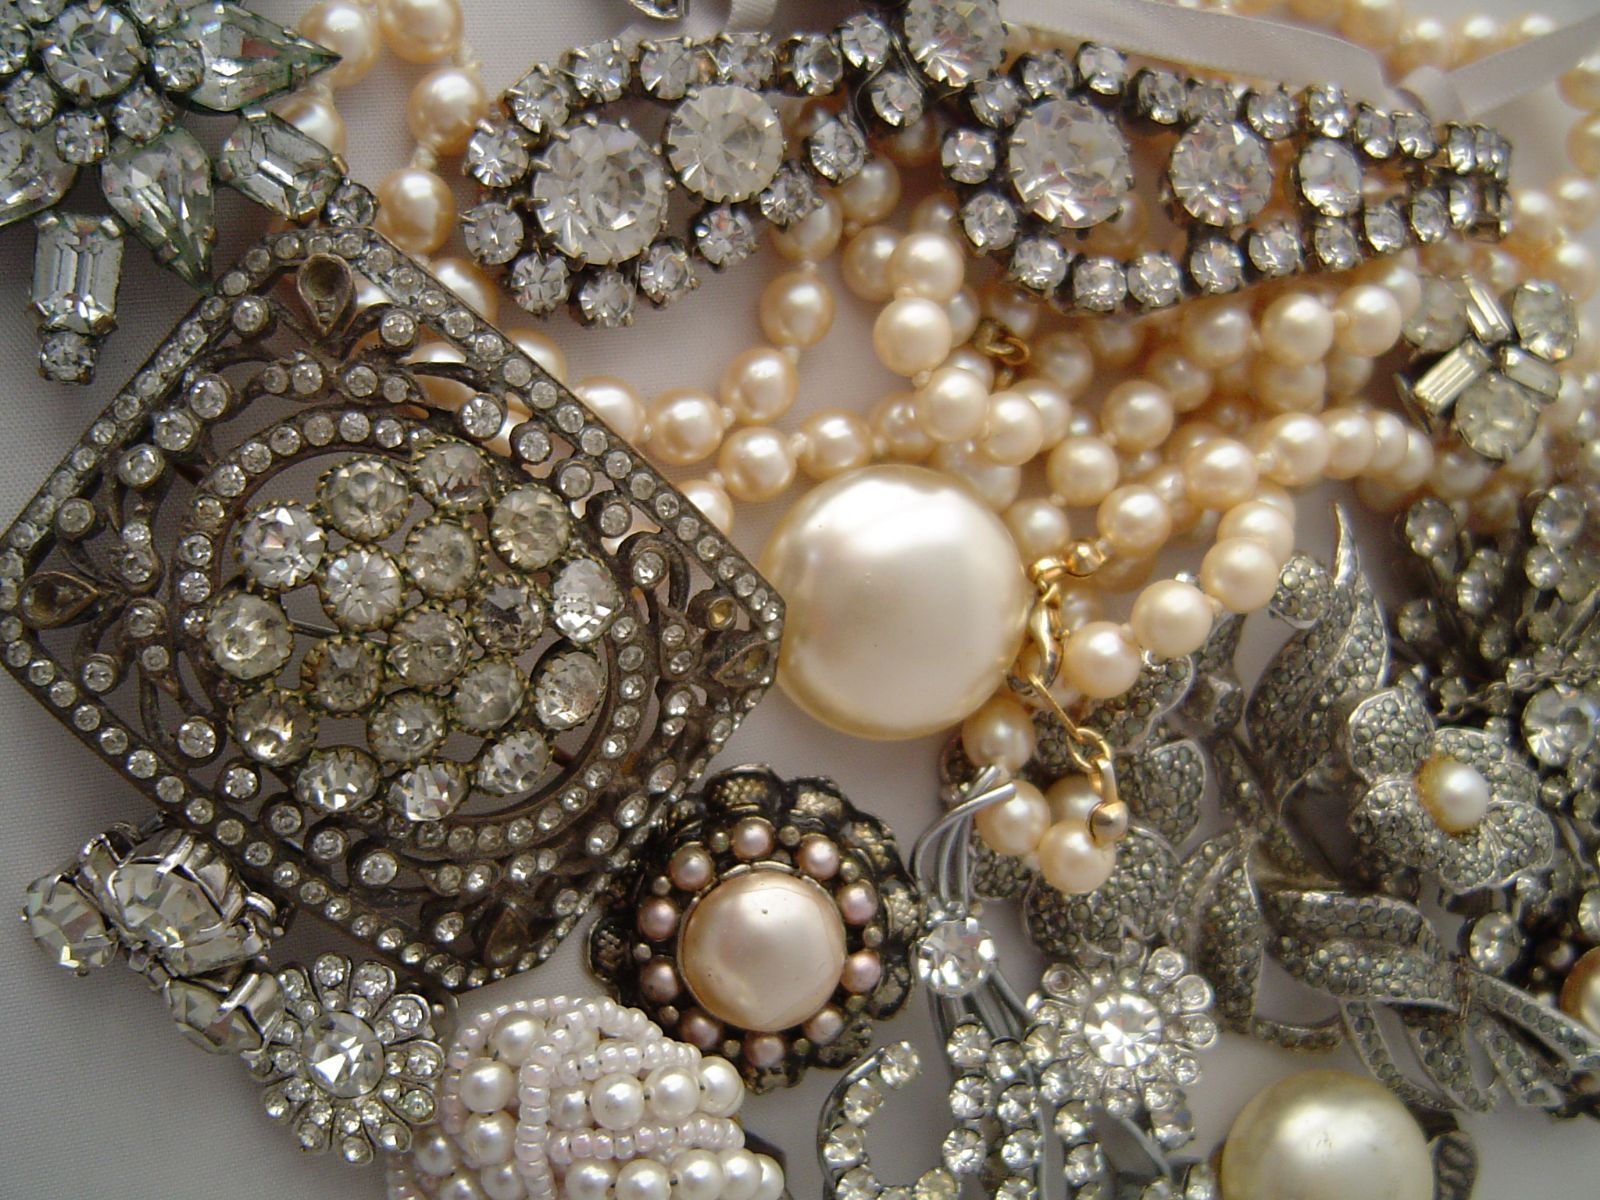 Vintage rhinestone and pearl jewelry